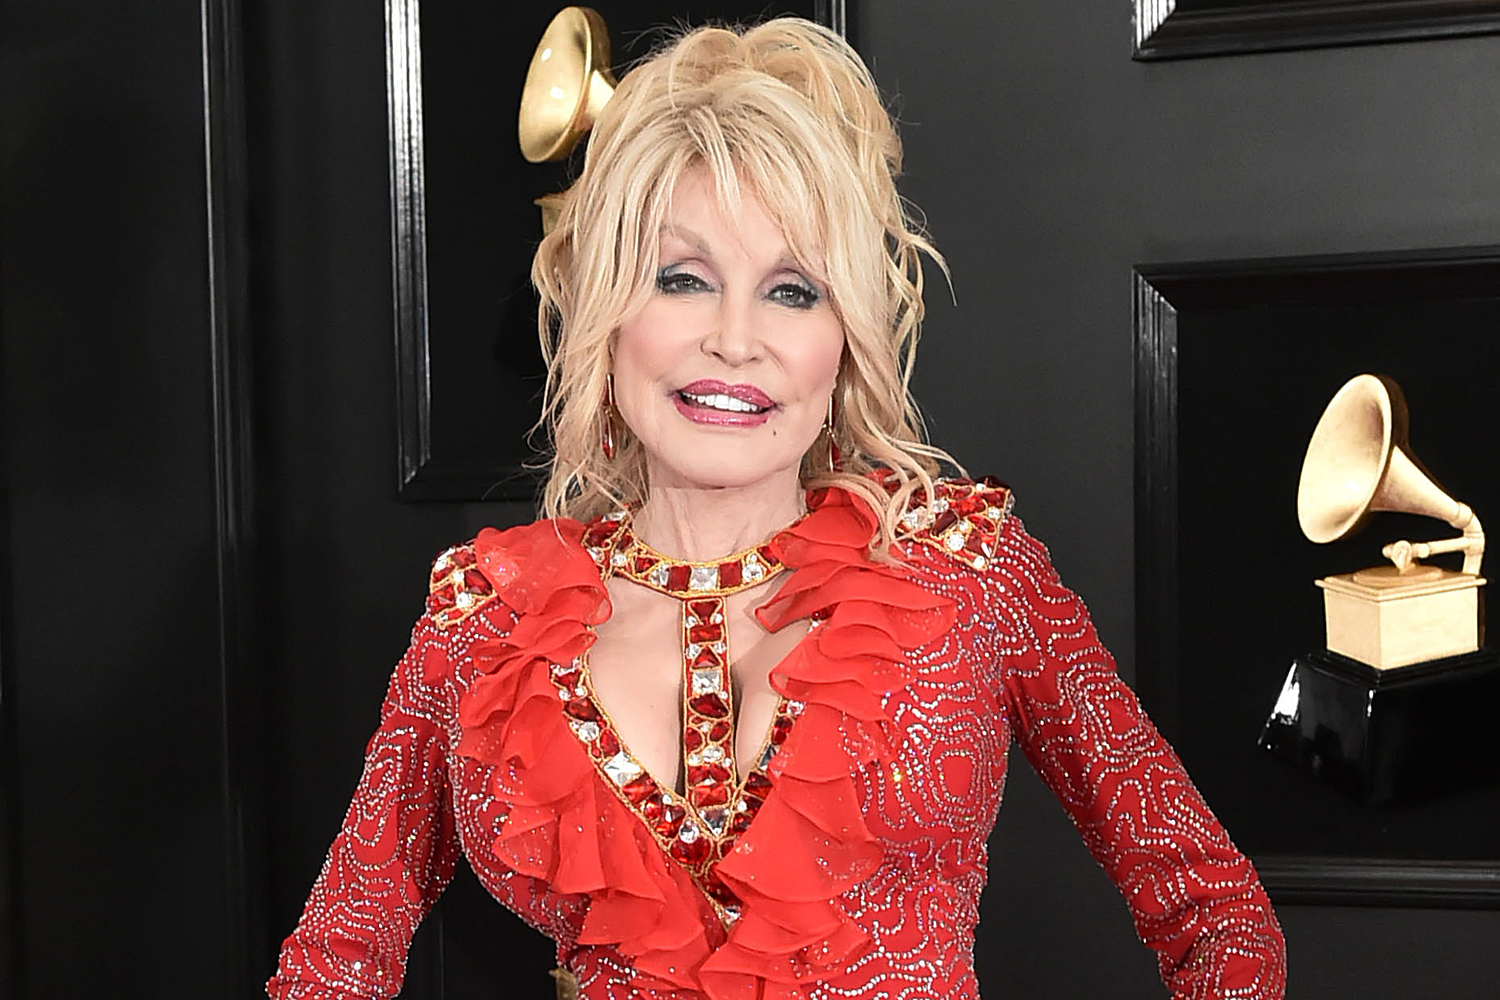 Dolly Parton wants to pose again for Playboy for 75th birthday: 'Boobs are still the same'